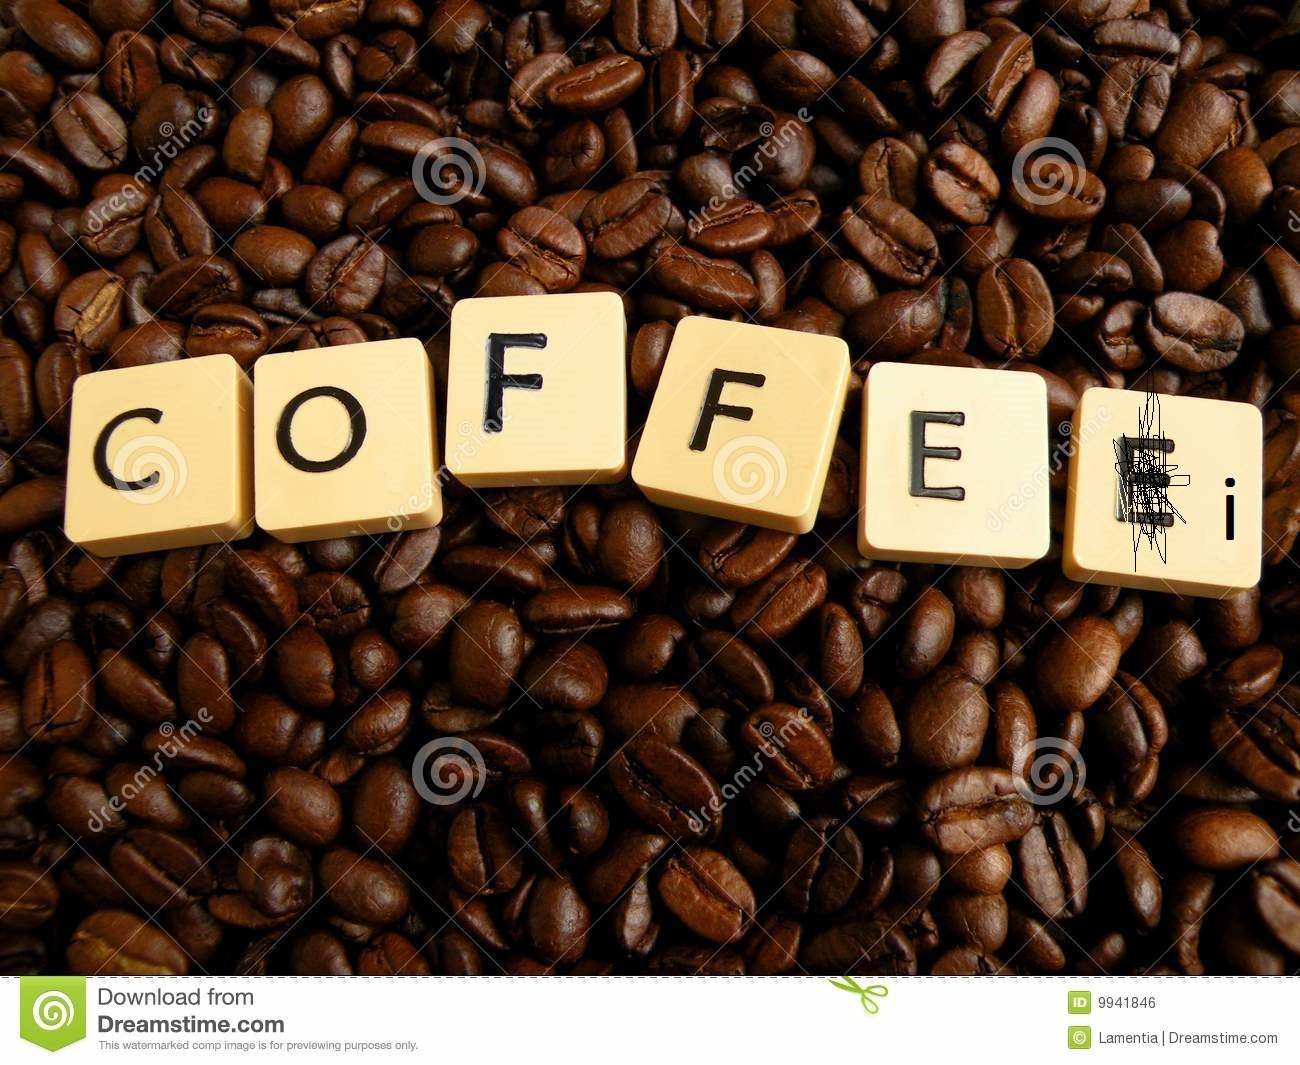 inscript-coffee-written-cubes-coffei-beans-9941846.jpg